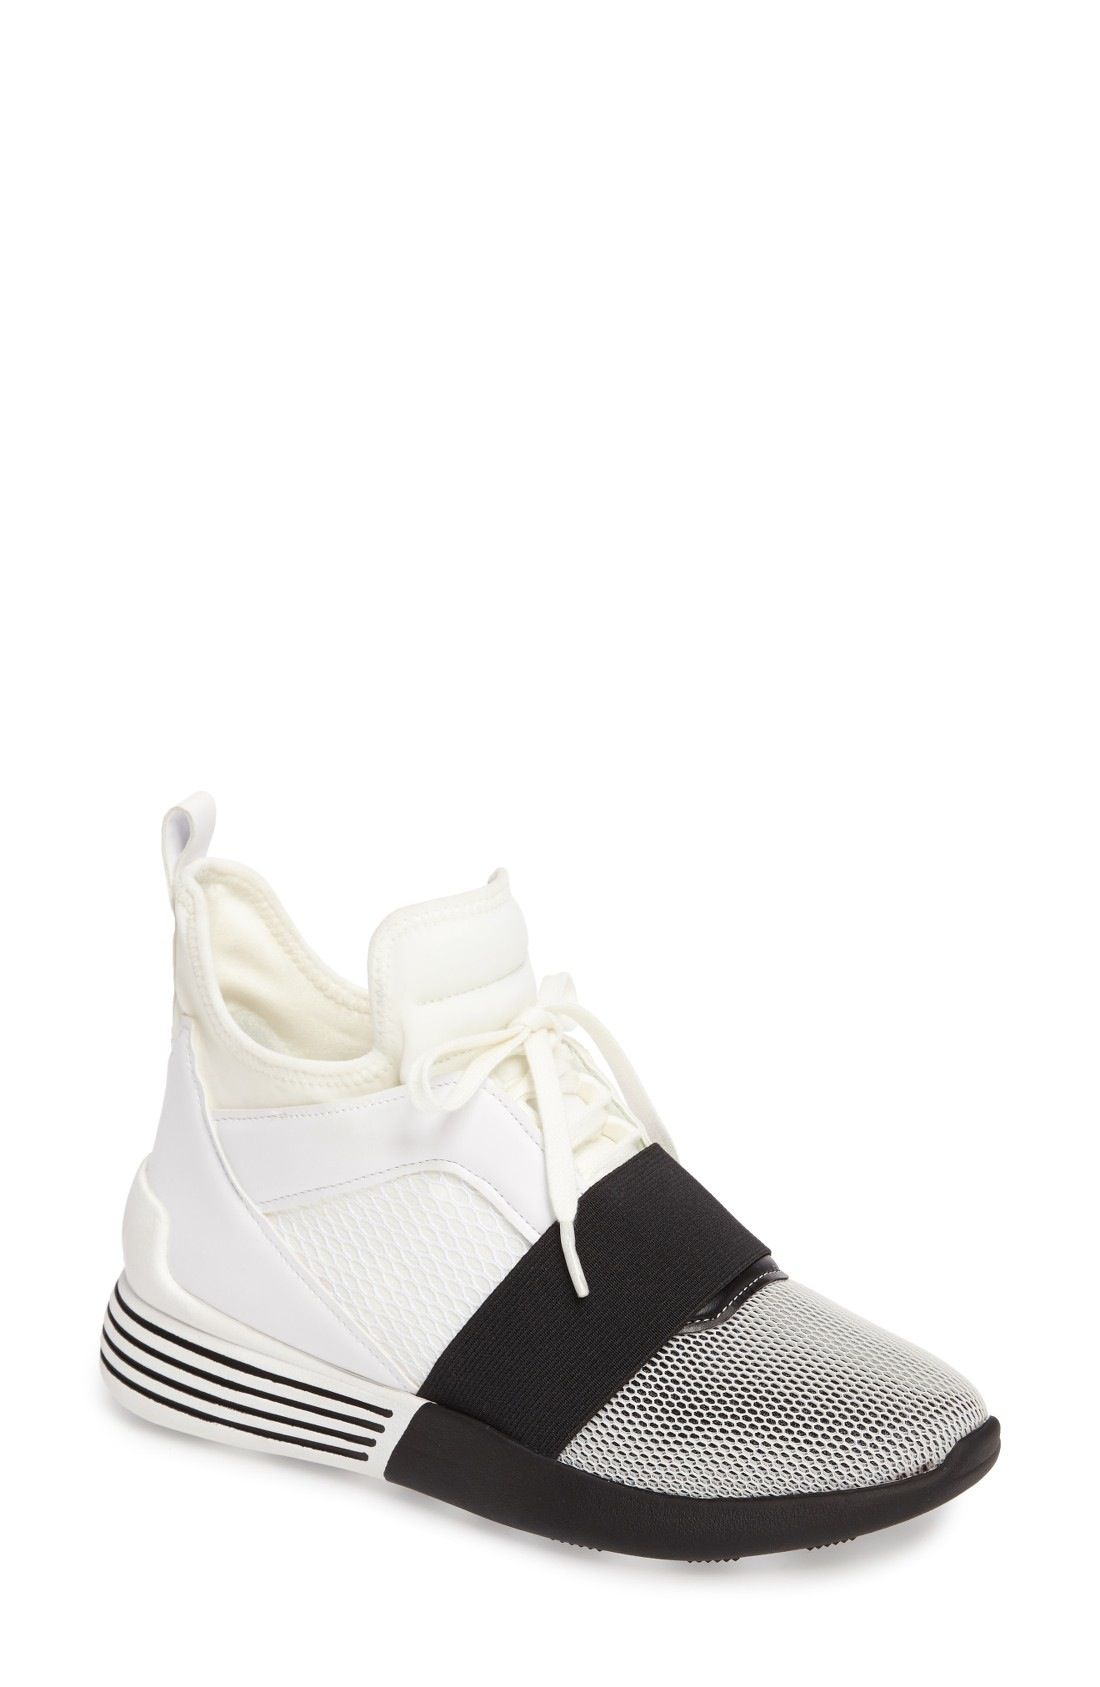 22bd415c750 KENDALL KYLIE Braydin Hidden Wedge Sneaker (Women) available at  Nordstrom